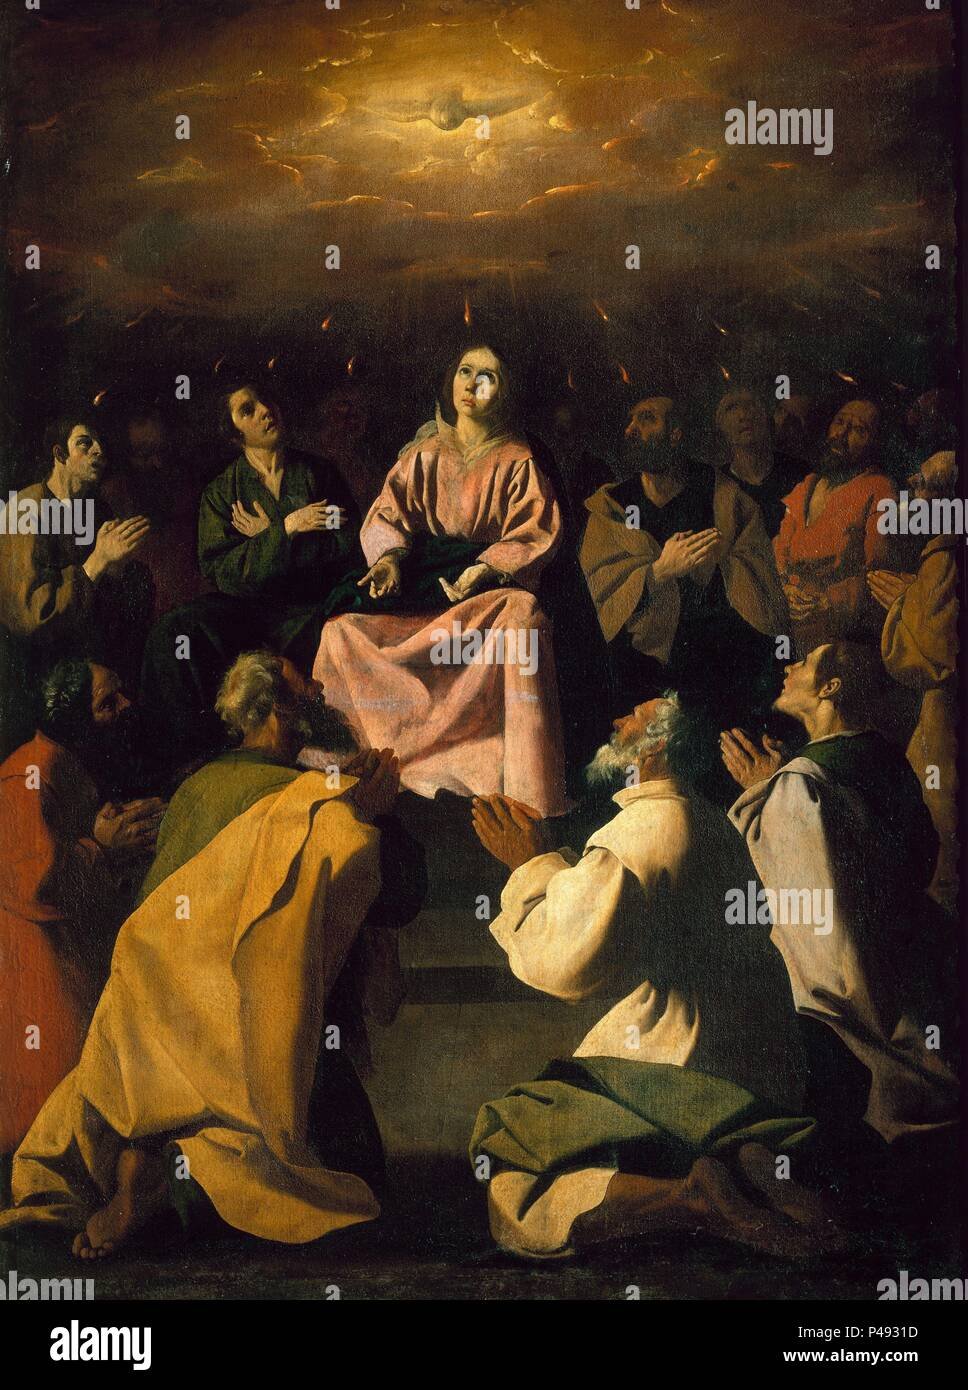 Spanish school. Pentecost. Pentecostes. Cadiz, archeology and Fine Arts museum. Author: Francisco de Zurbaran (c. 1598-1664). Location: MUSEO DE CADIZ-BELLAS ARTES, CADIZ, SPAIN. - Stock Image